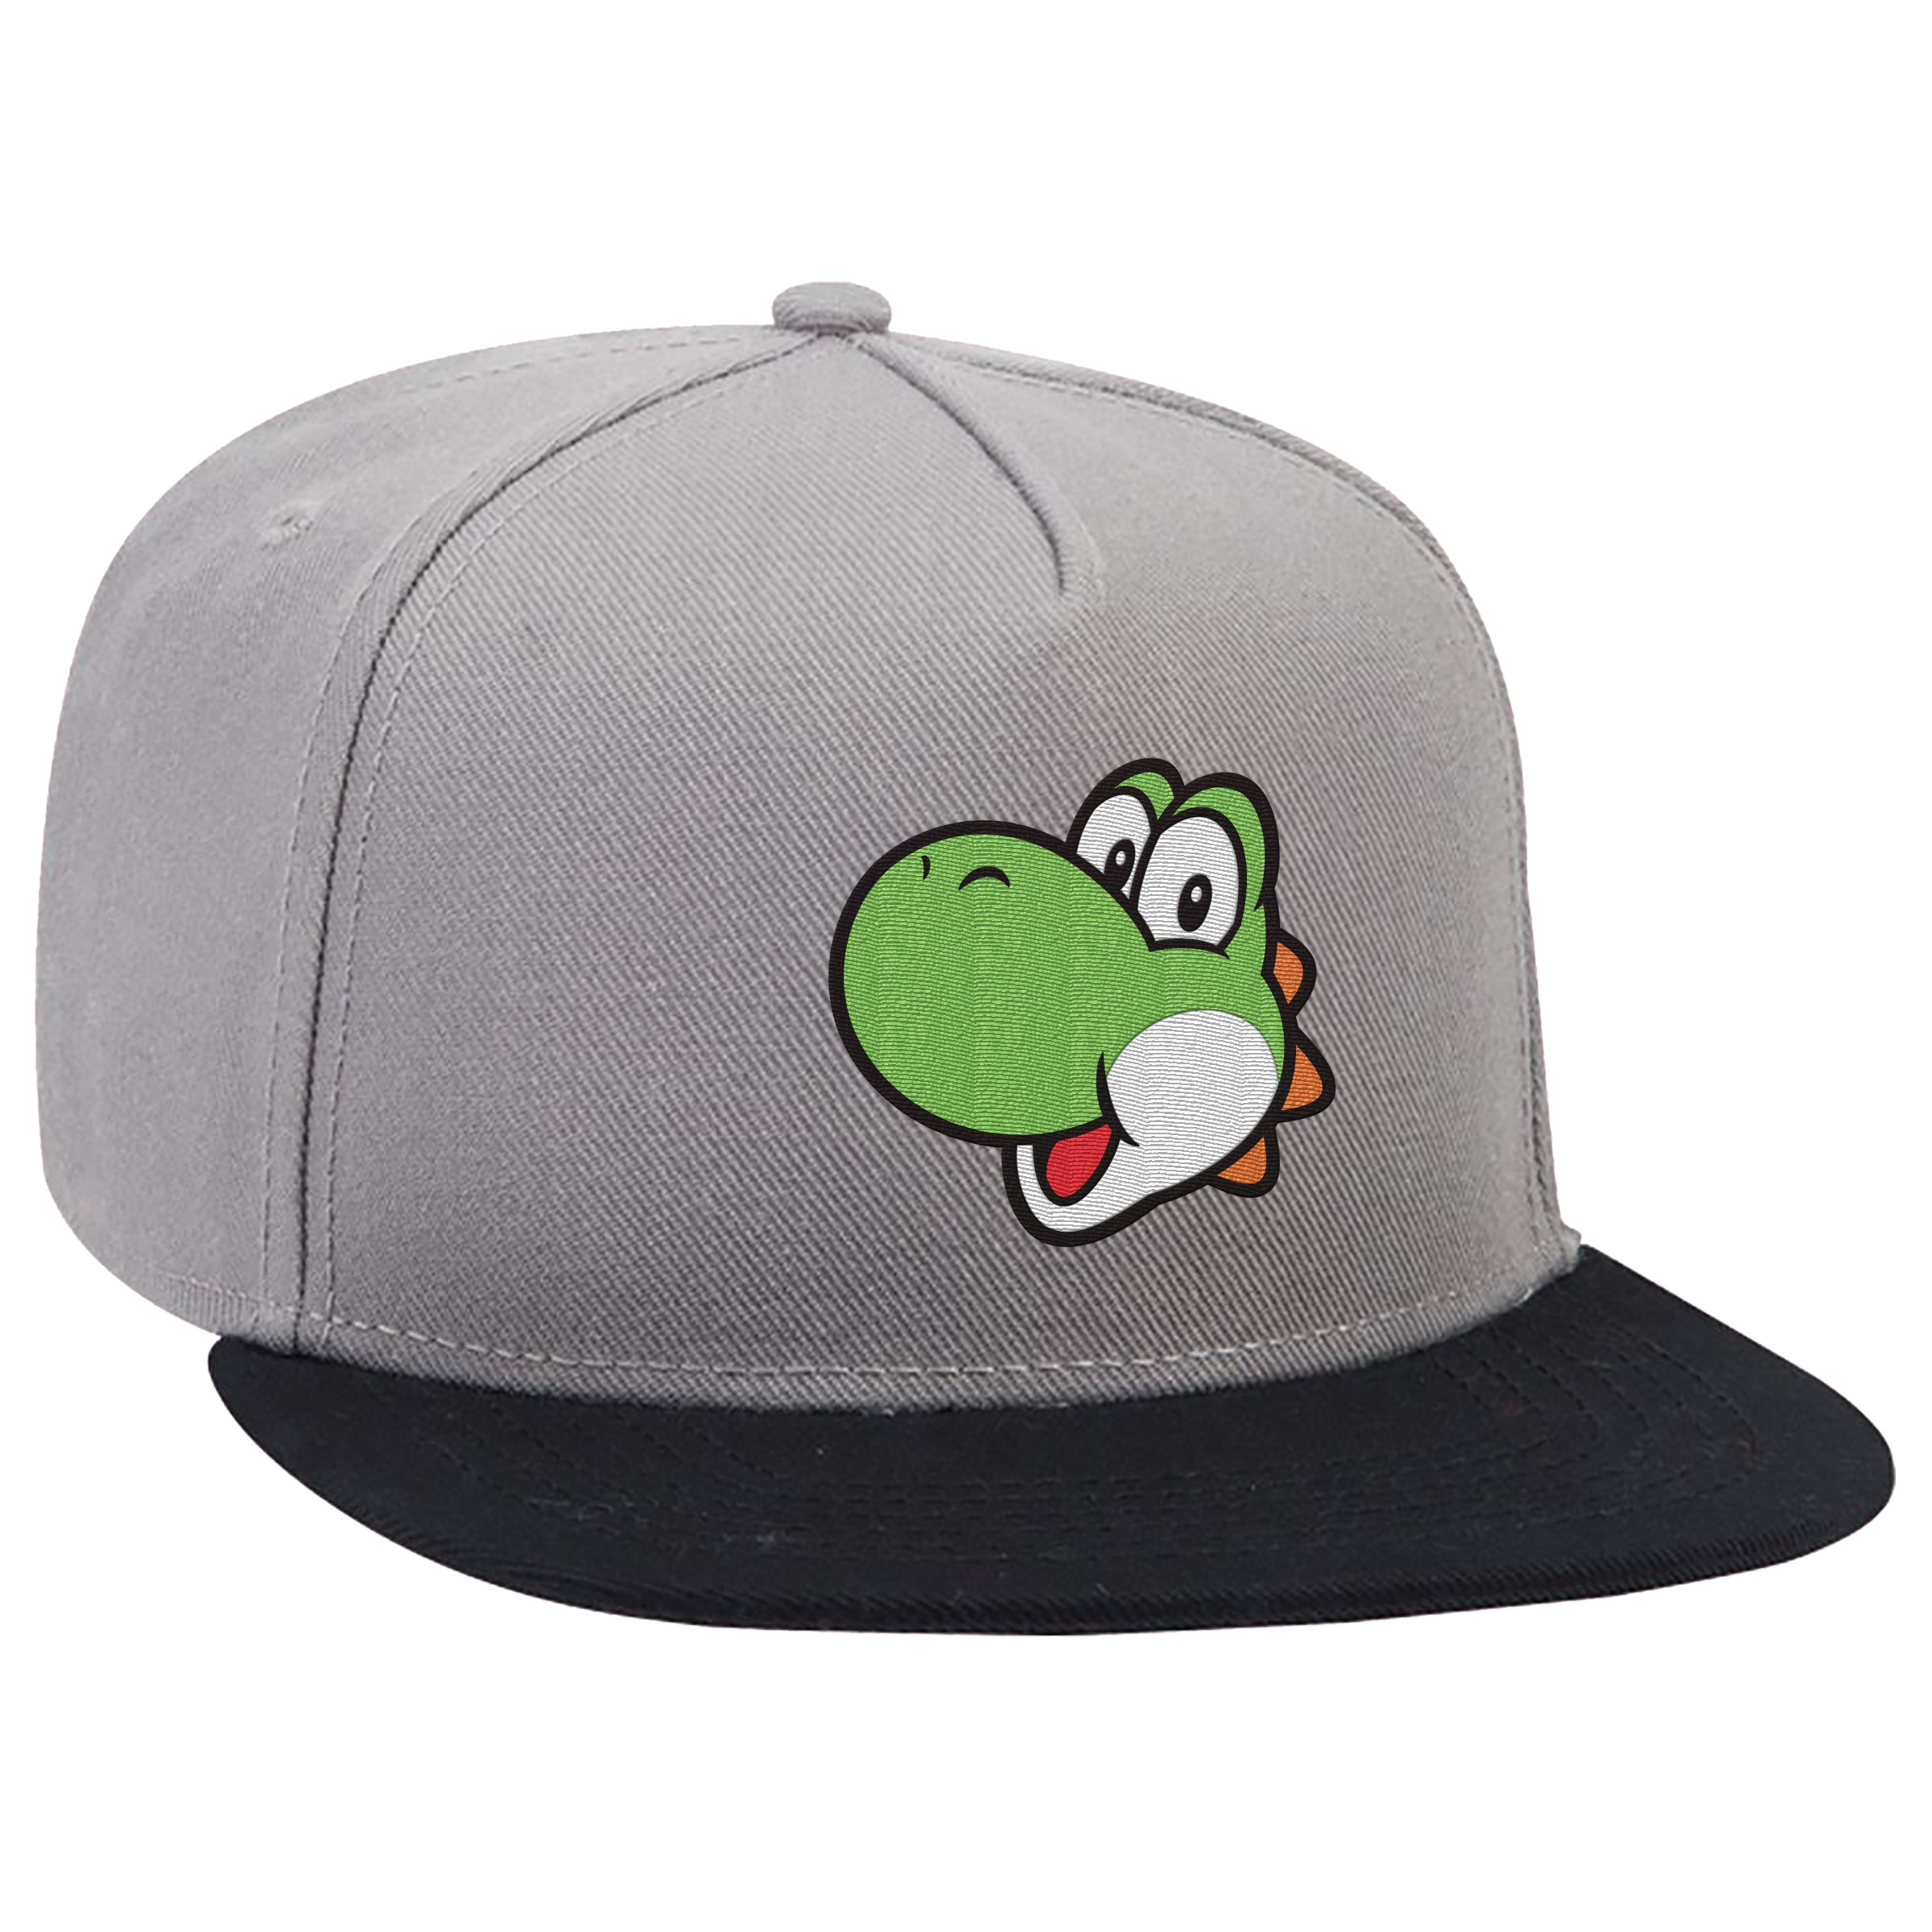 "Super Mario™ ""Yoshi"" Flat Bill Hat - Officially Licensed by Nintendo"